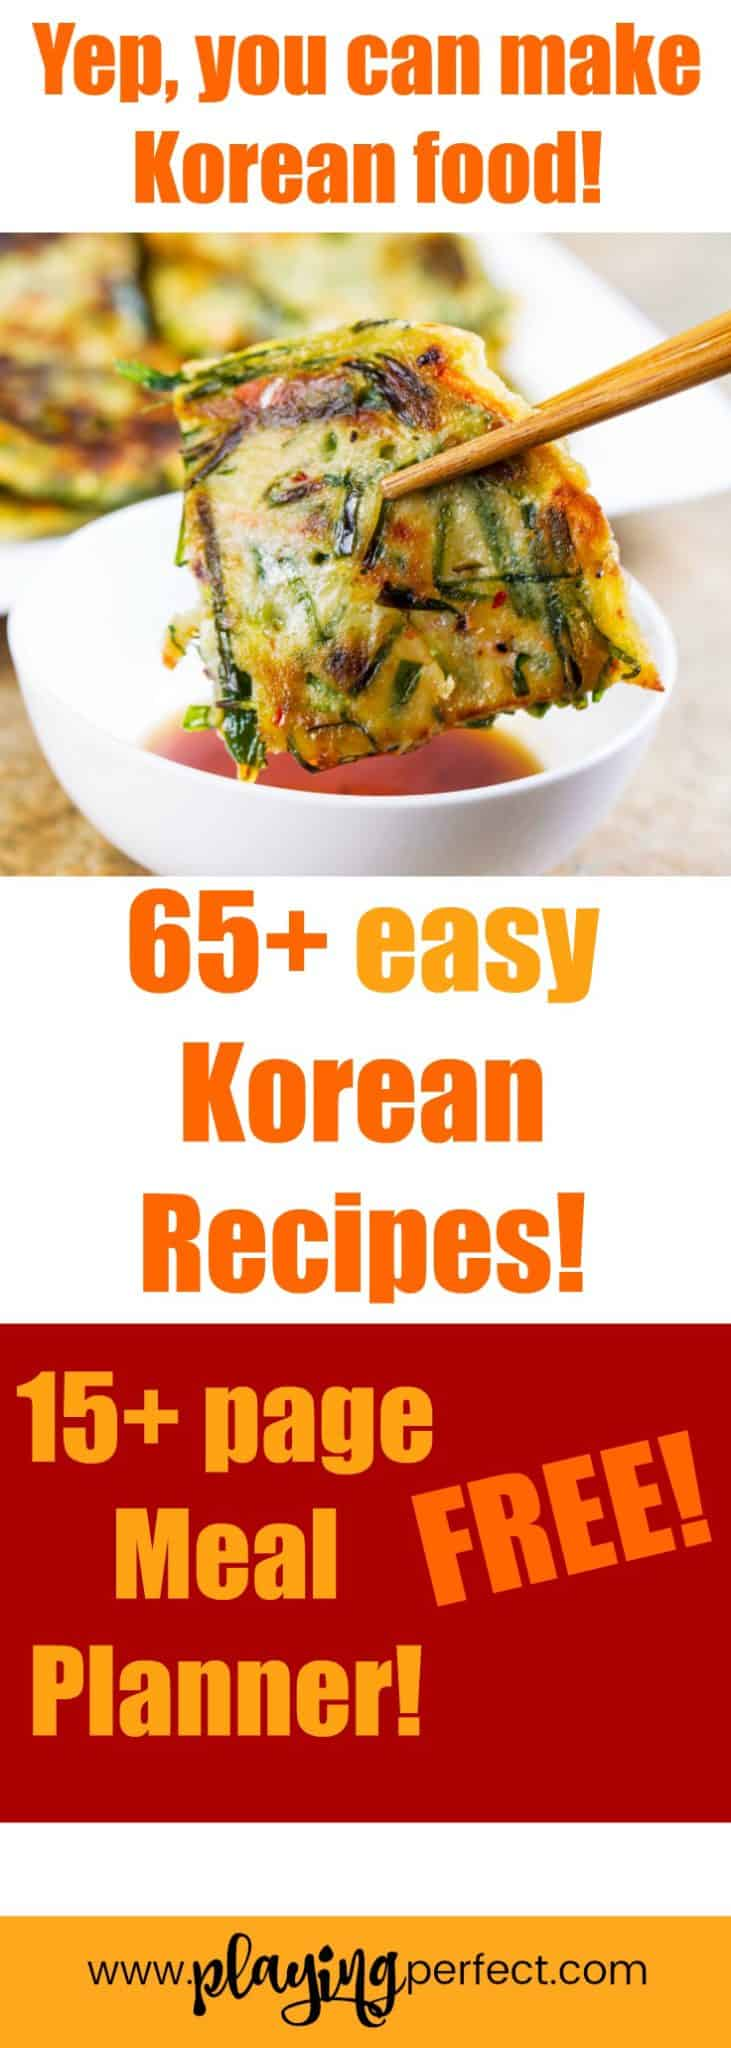 73 korean recipes that will make you excited to get in the kitchen easy korean recipe ideas here are korean dinner ideas korean instant pot recipes forumfinder Image collections